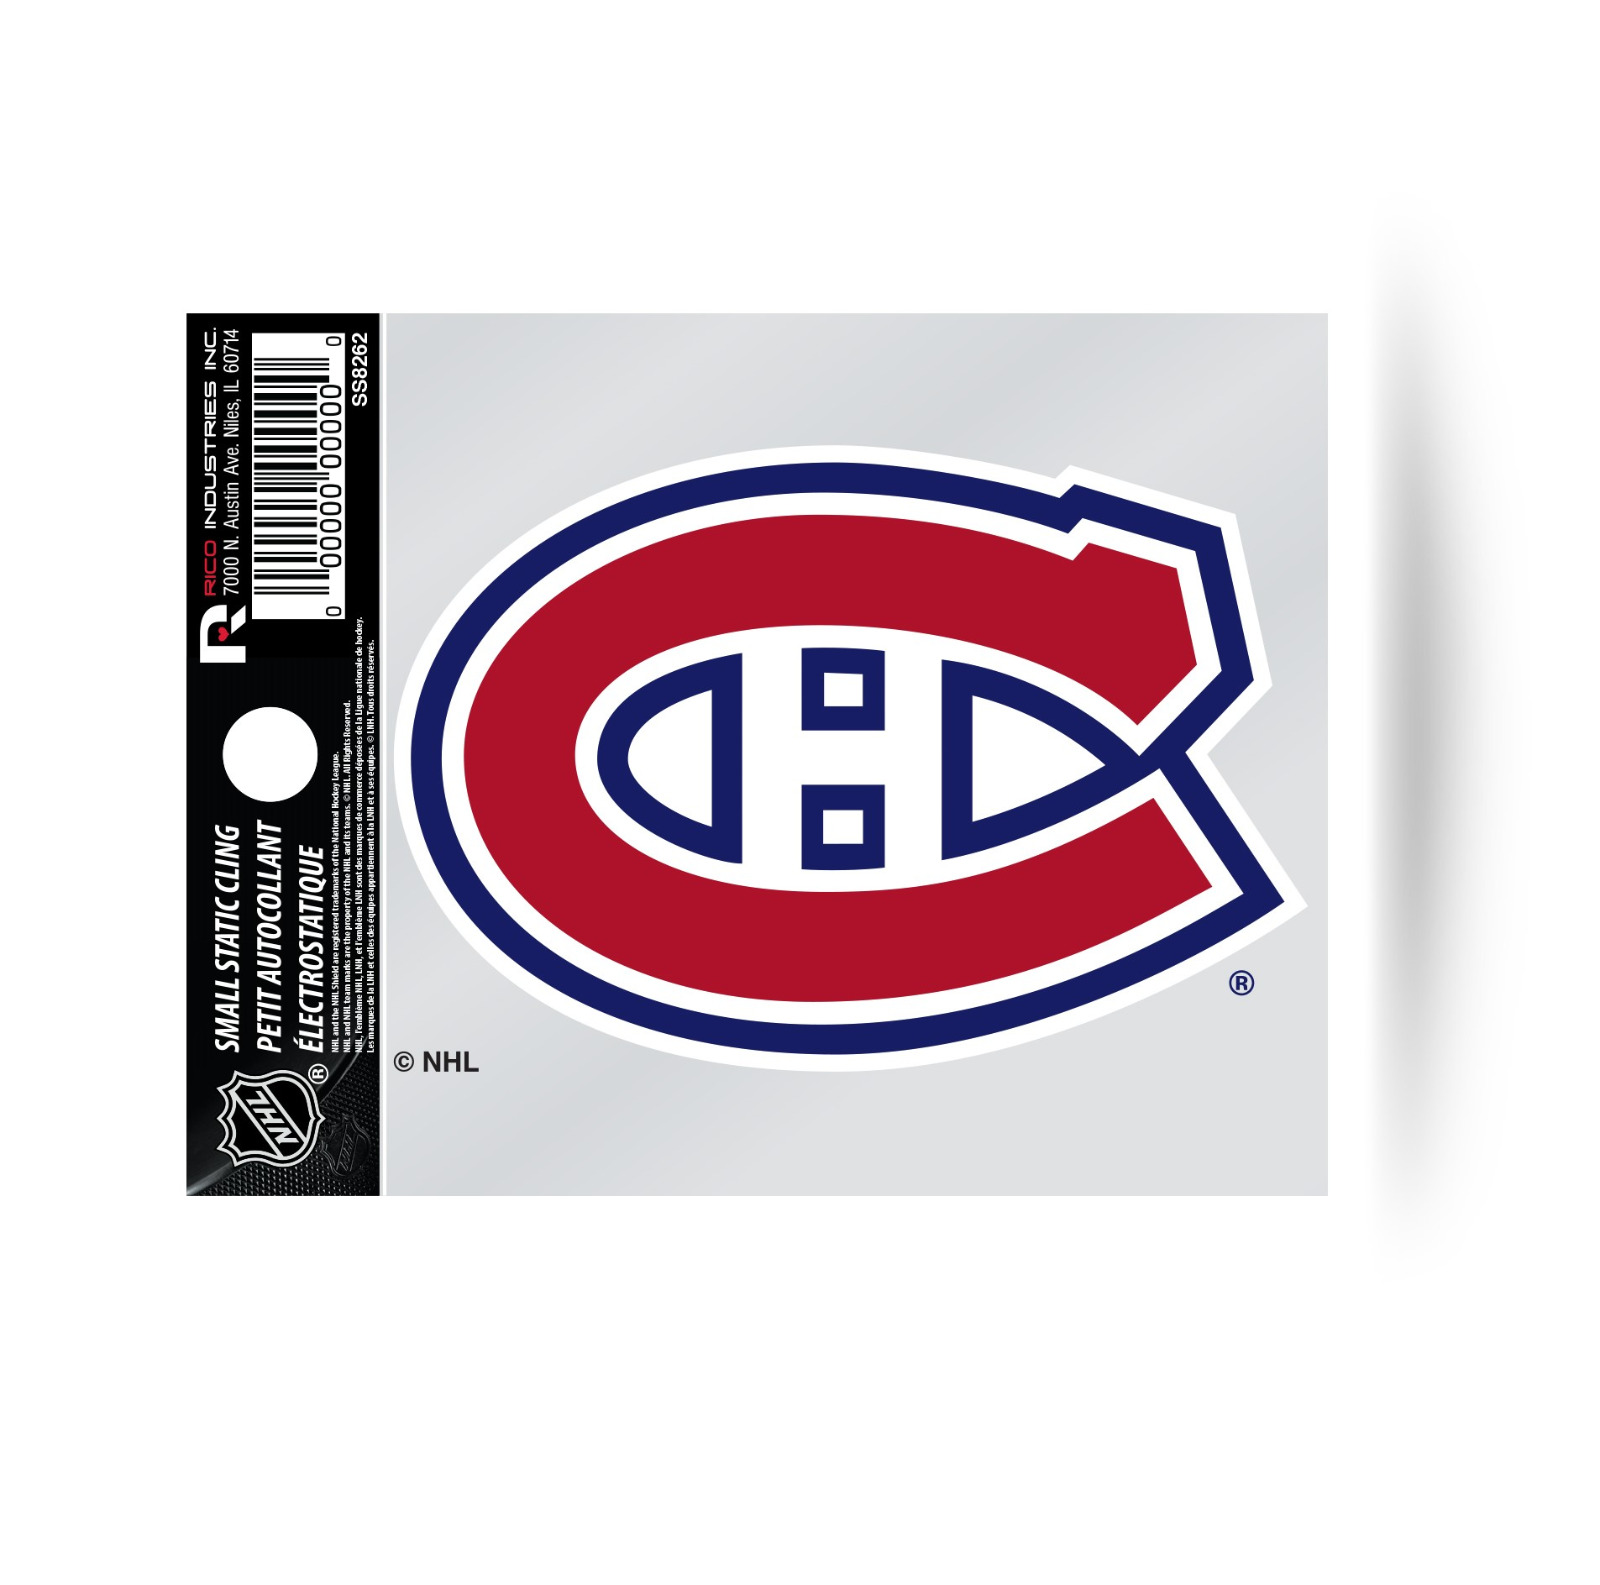 Montreal Canadiens Logo Static Cling Decal Sticker 3x4 Inches Window Or Car 94746012113 Ebay